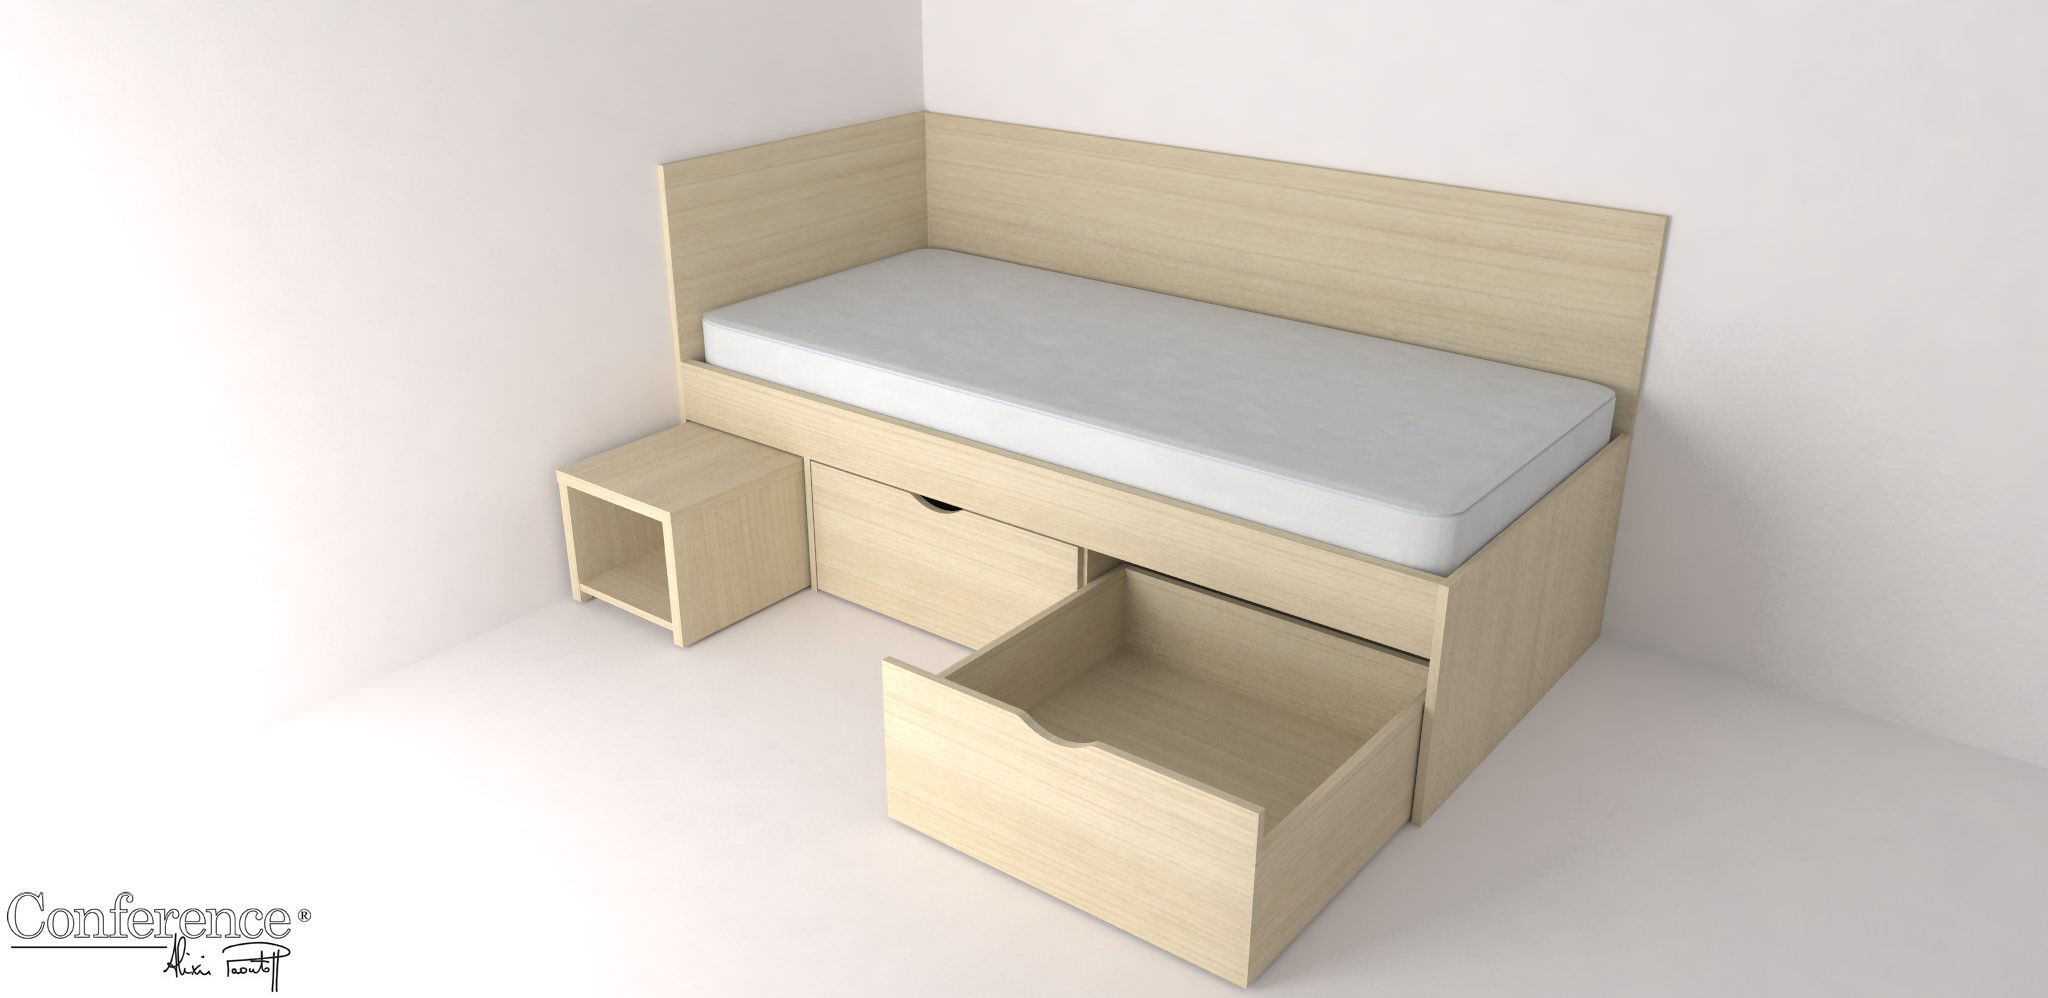 Modern single bed designs with storage - Single Bed Contemporary Integrated Bedside Table With Storage